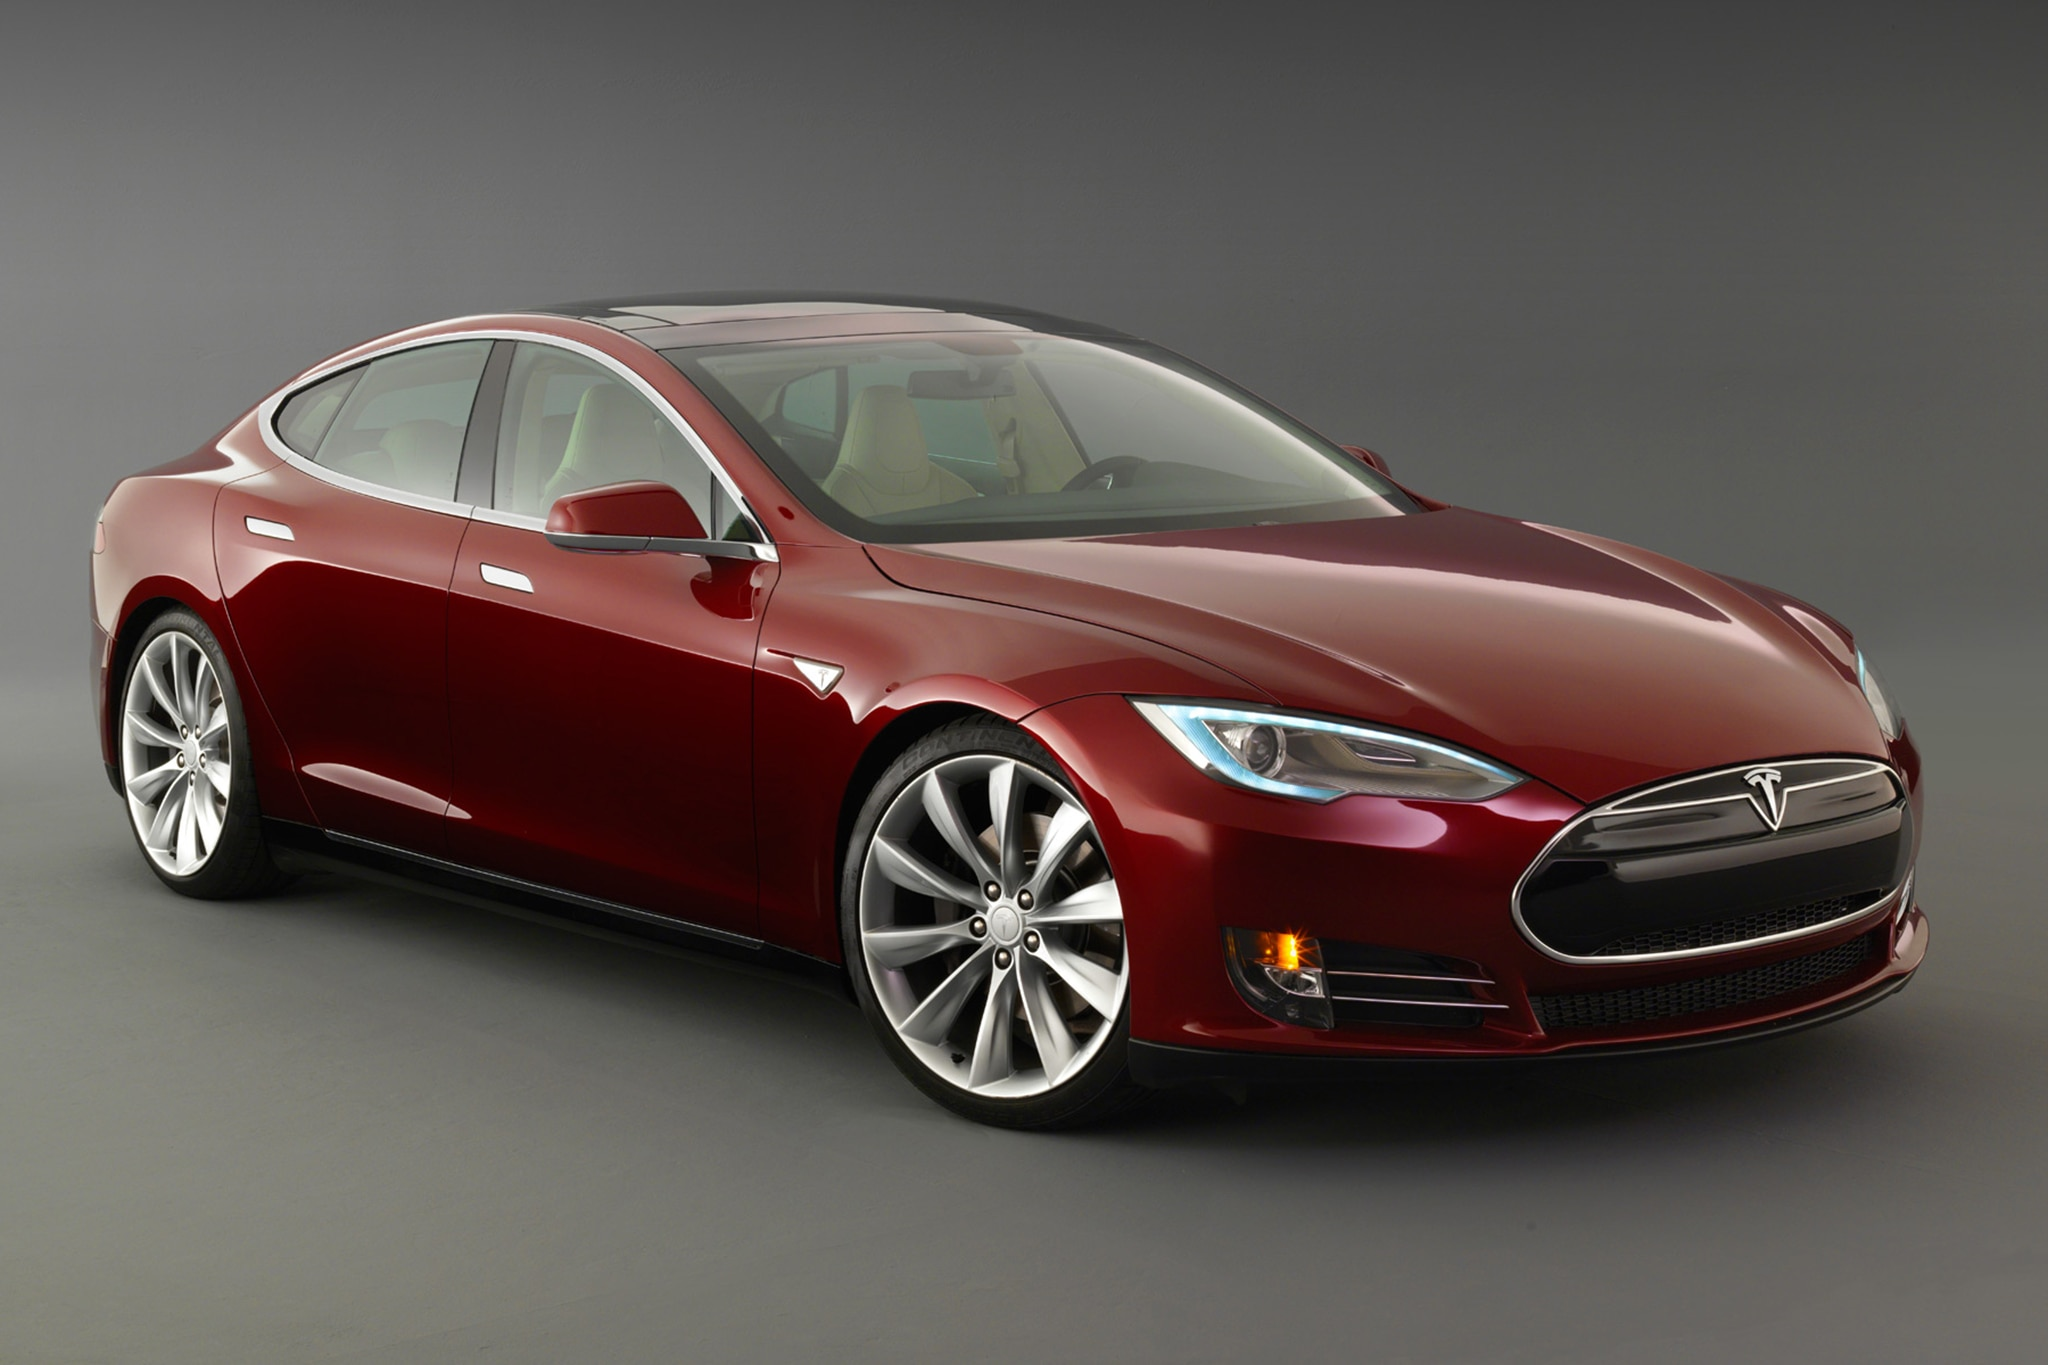 2014 Tesla Model S Three Quarters View1